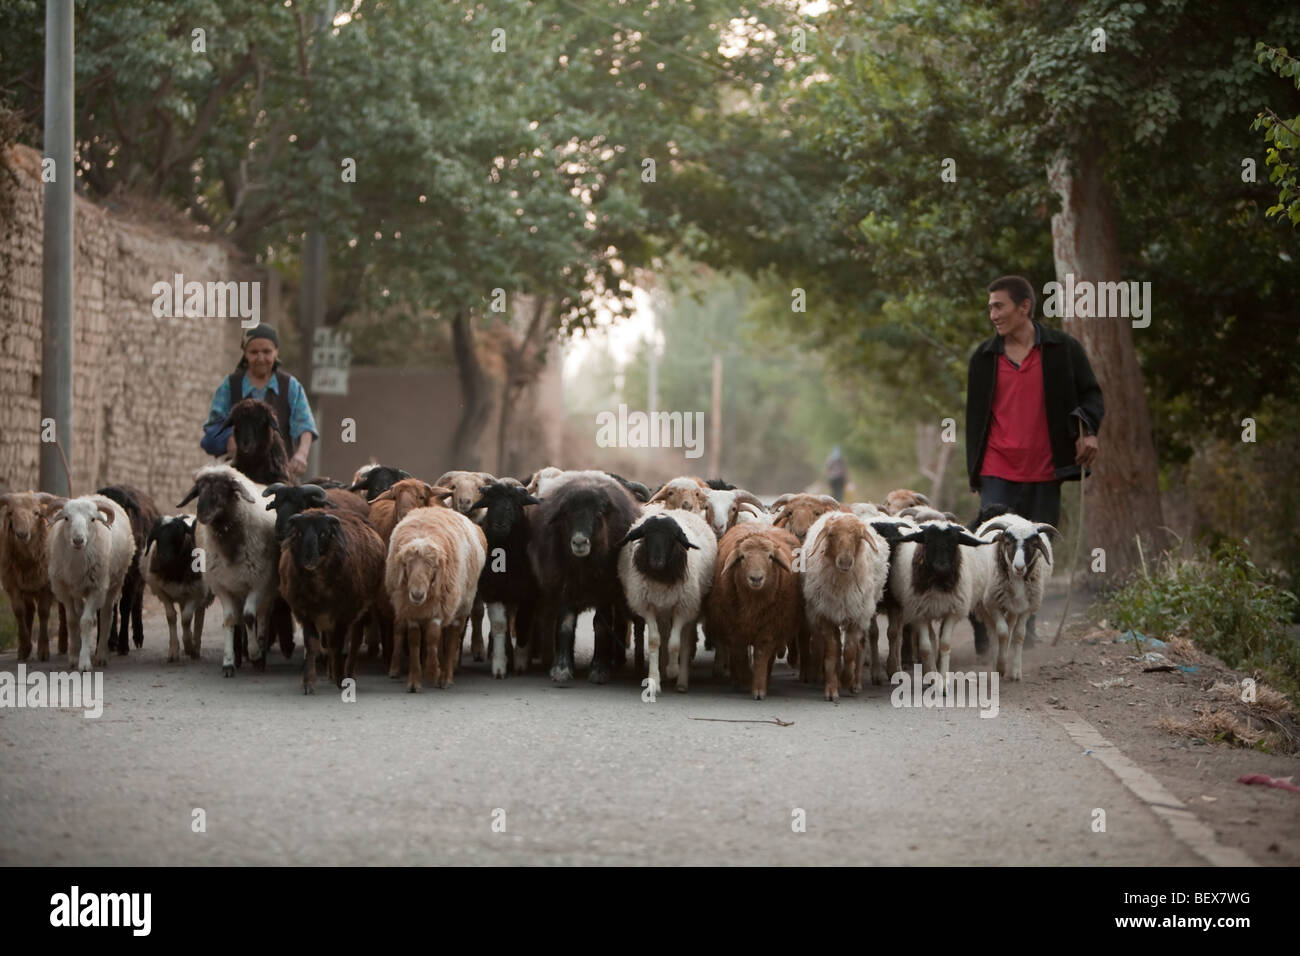 Uyghur shepherds bringing the flock in from grazing at the end of the day in Turpan, China. - Stock Image